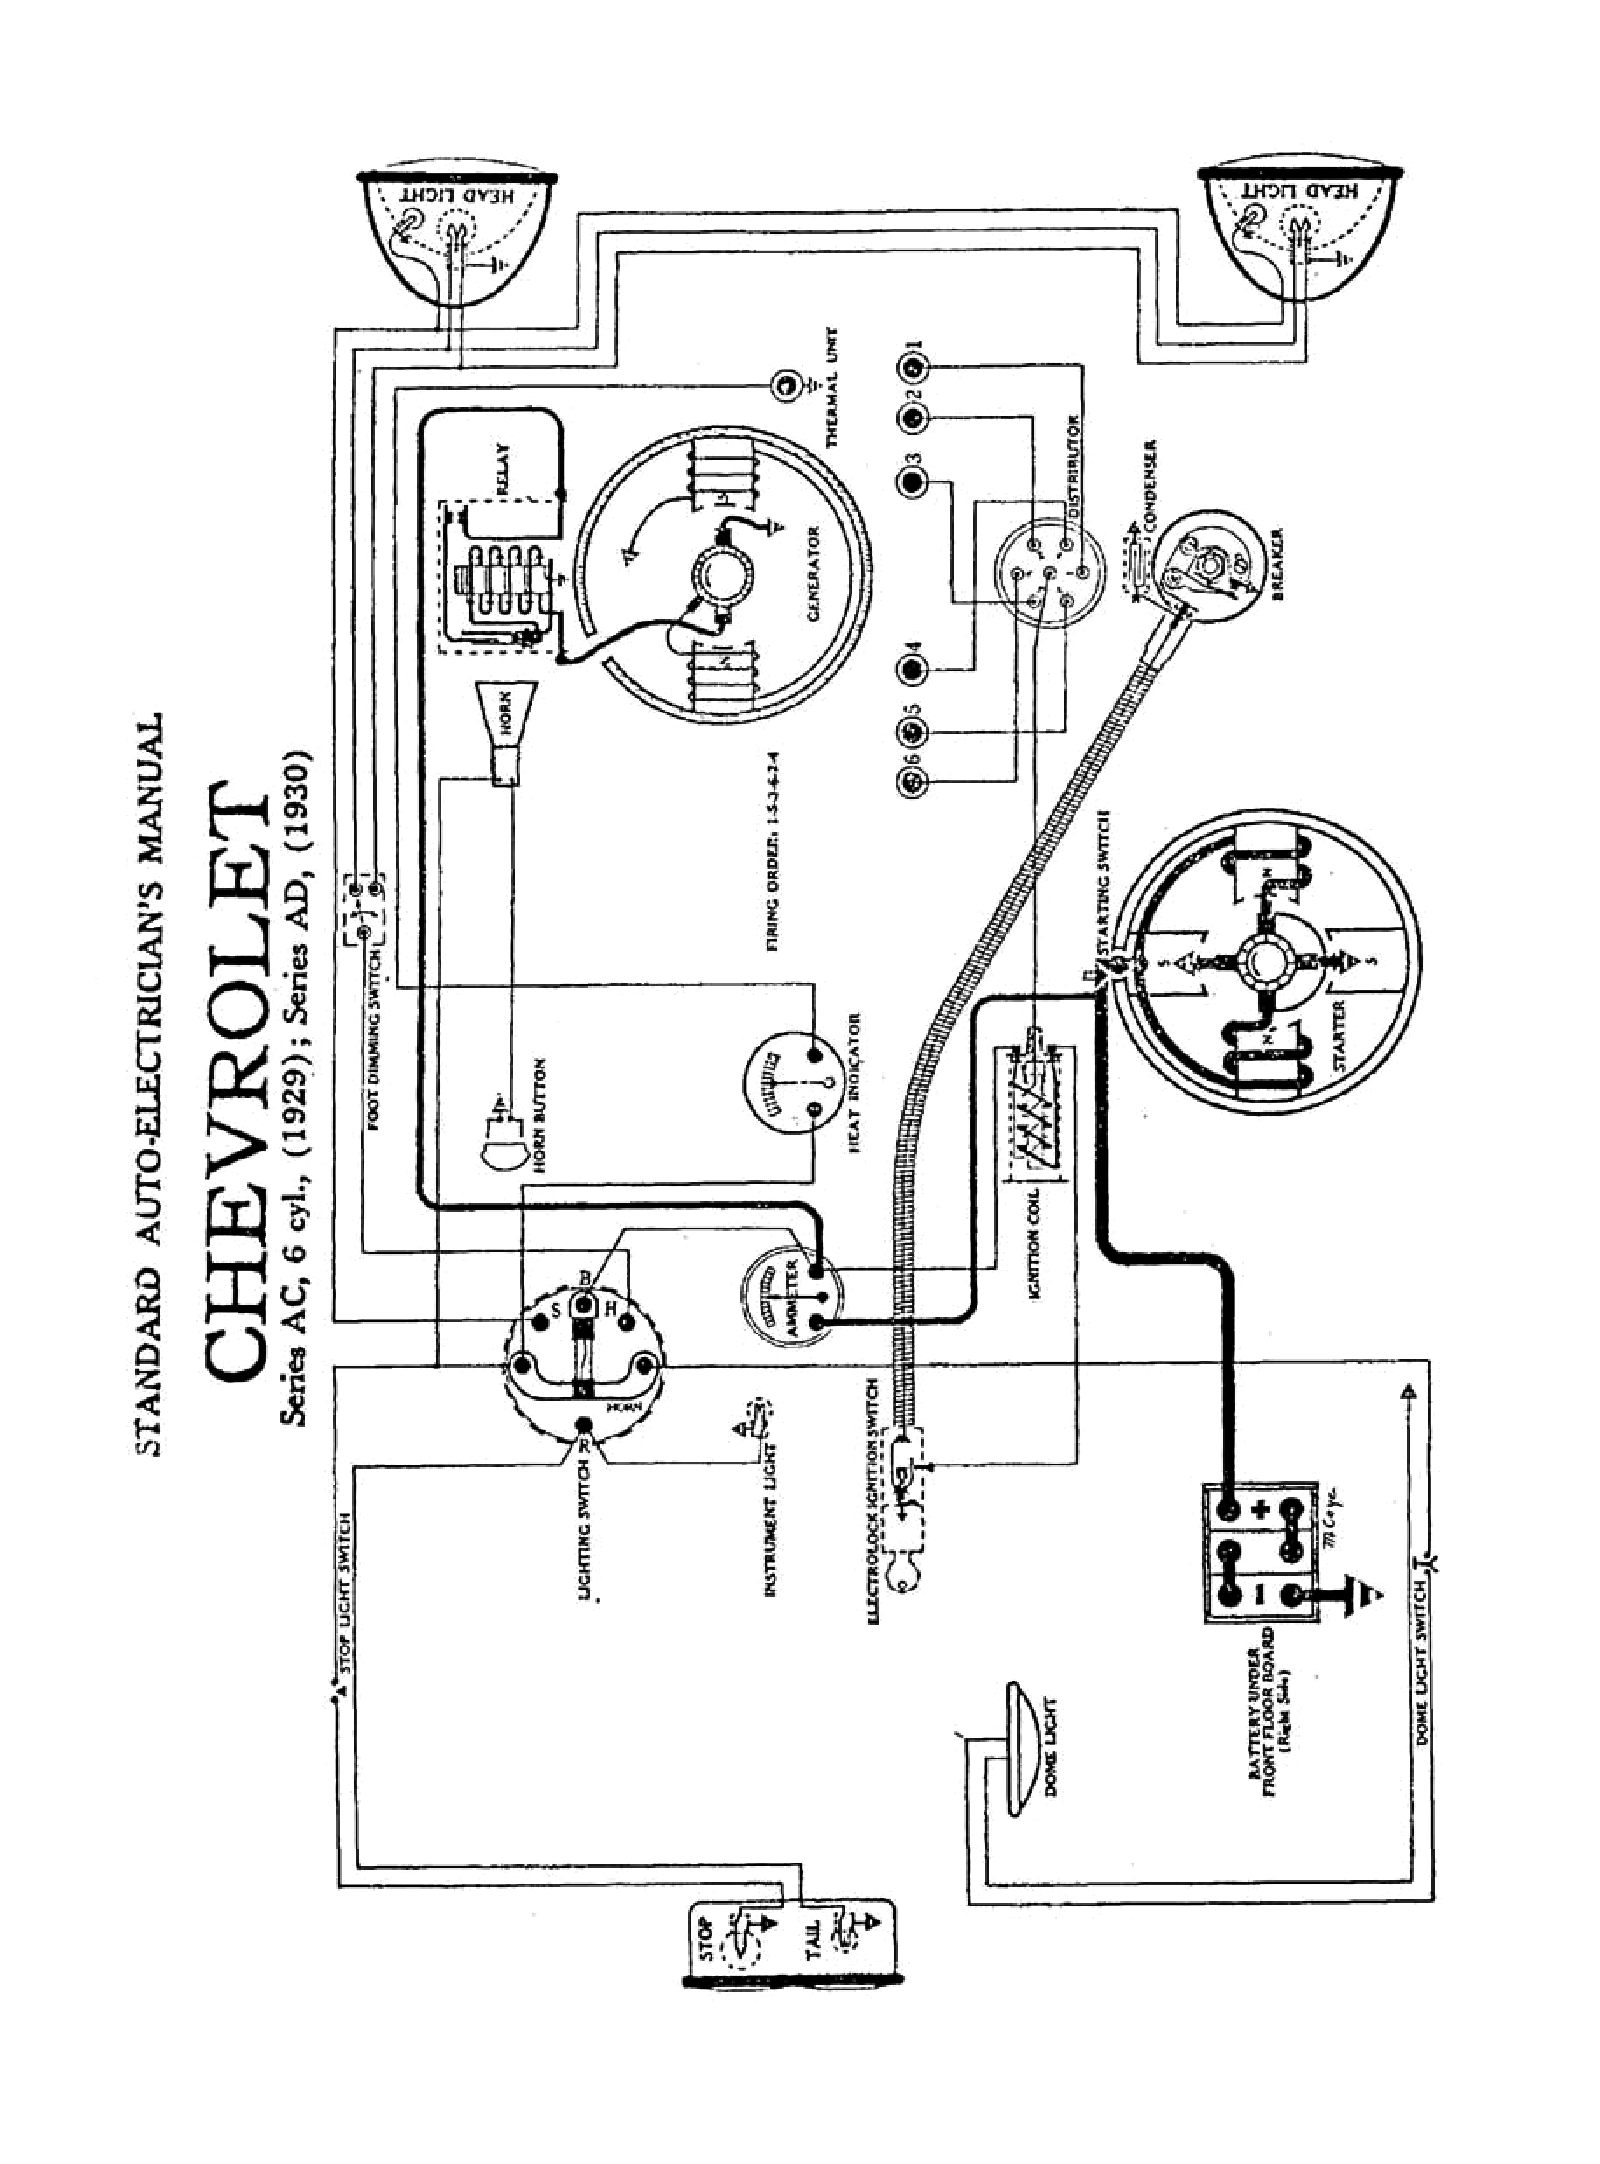 2930wiring chevy wiring diagrams wiring diagram for 1948 ford truck at alyssarenee.co